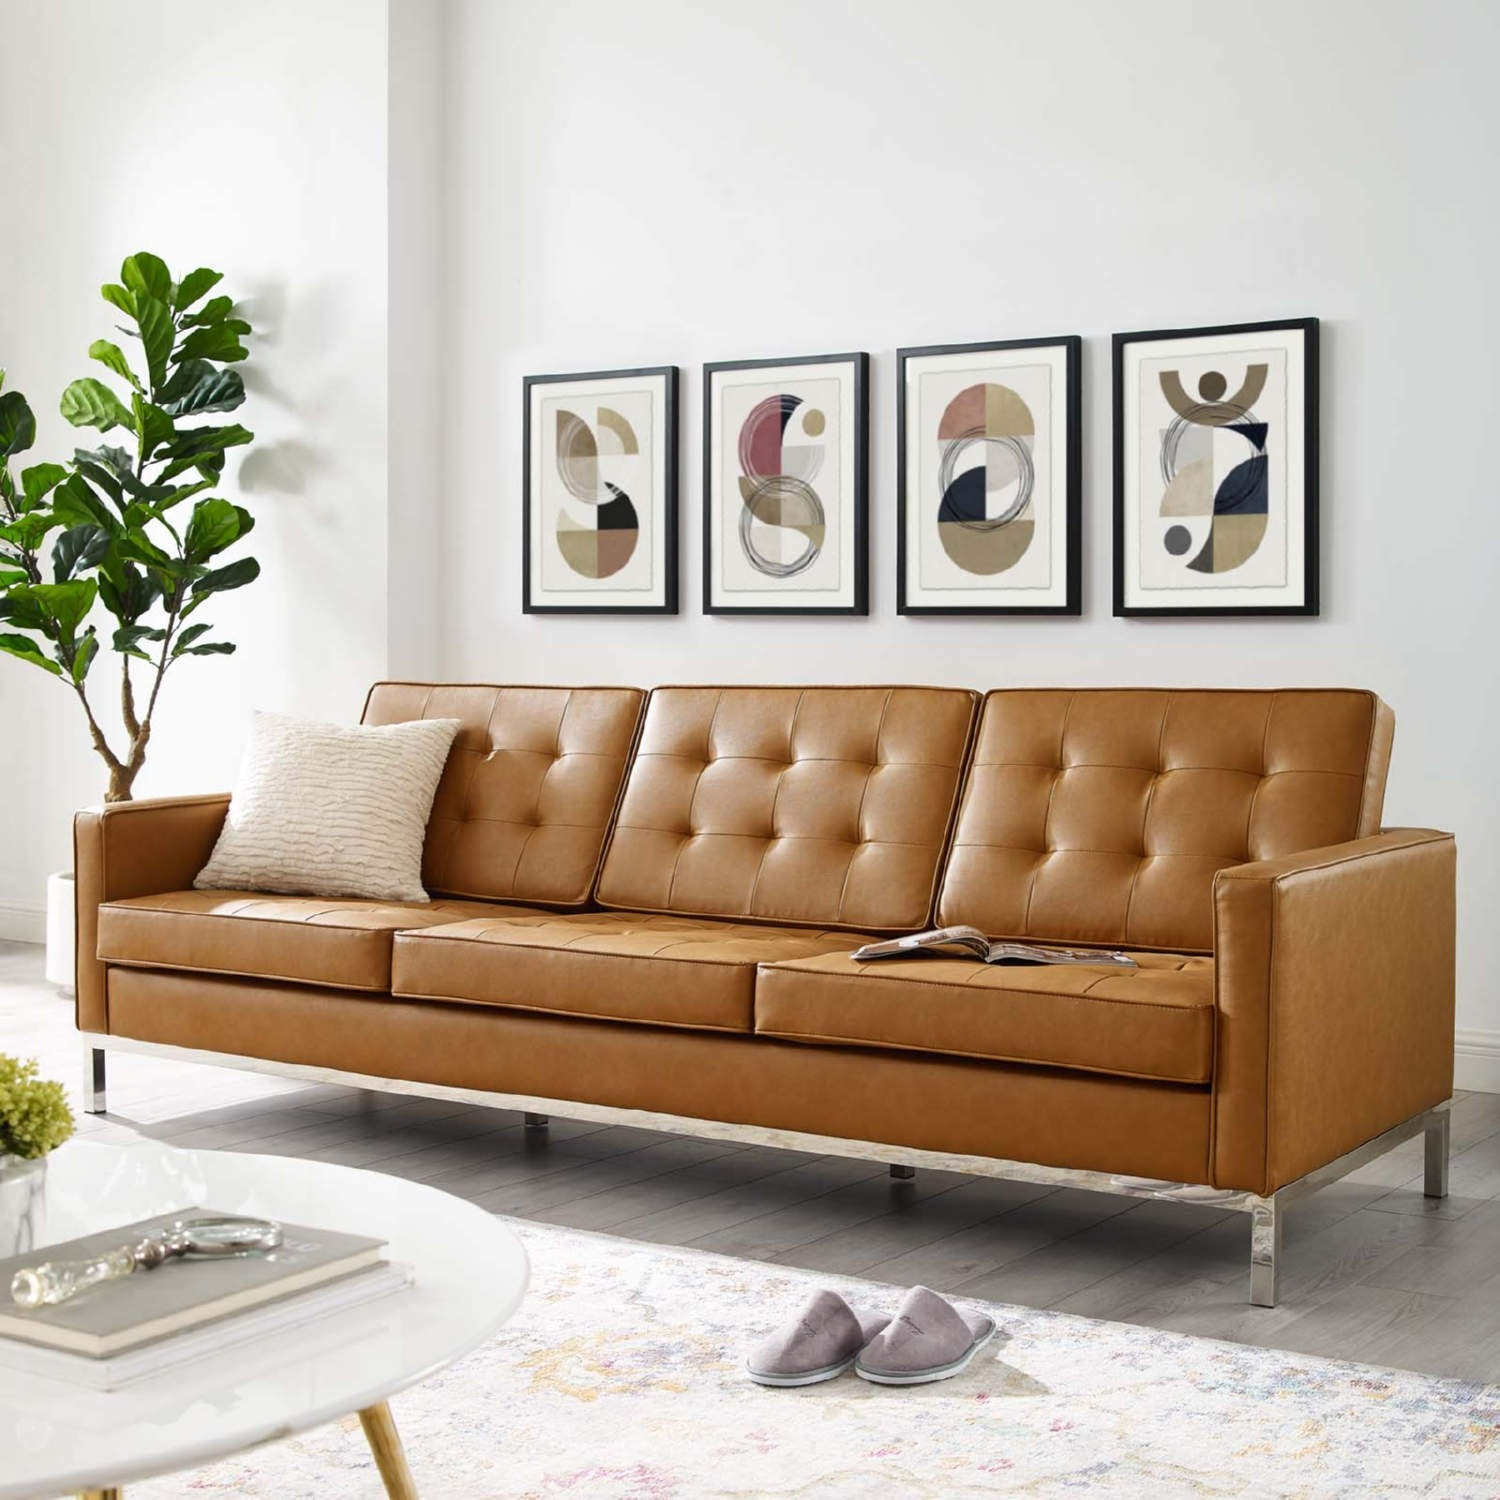 Modern Sofa In Tan Faux Leather Upholstery - image-4